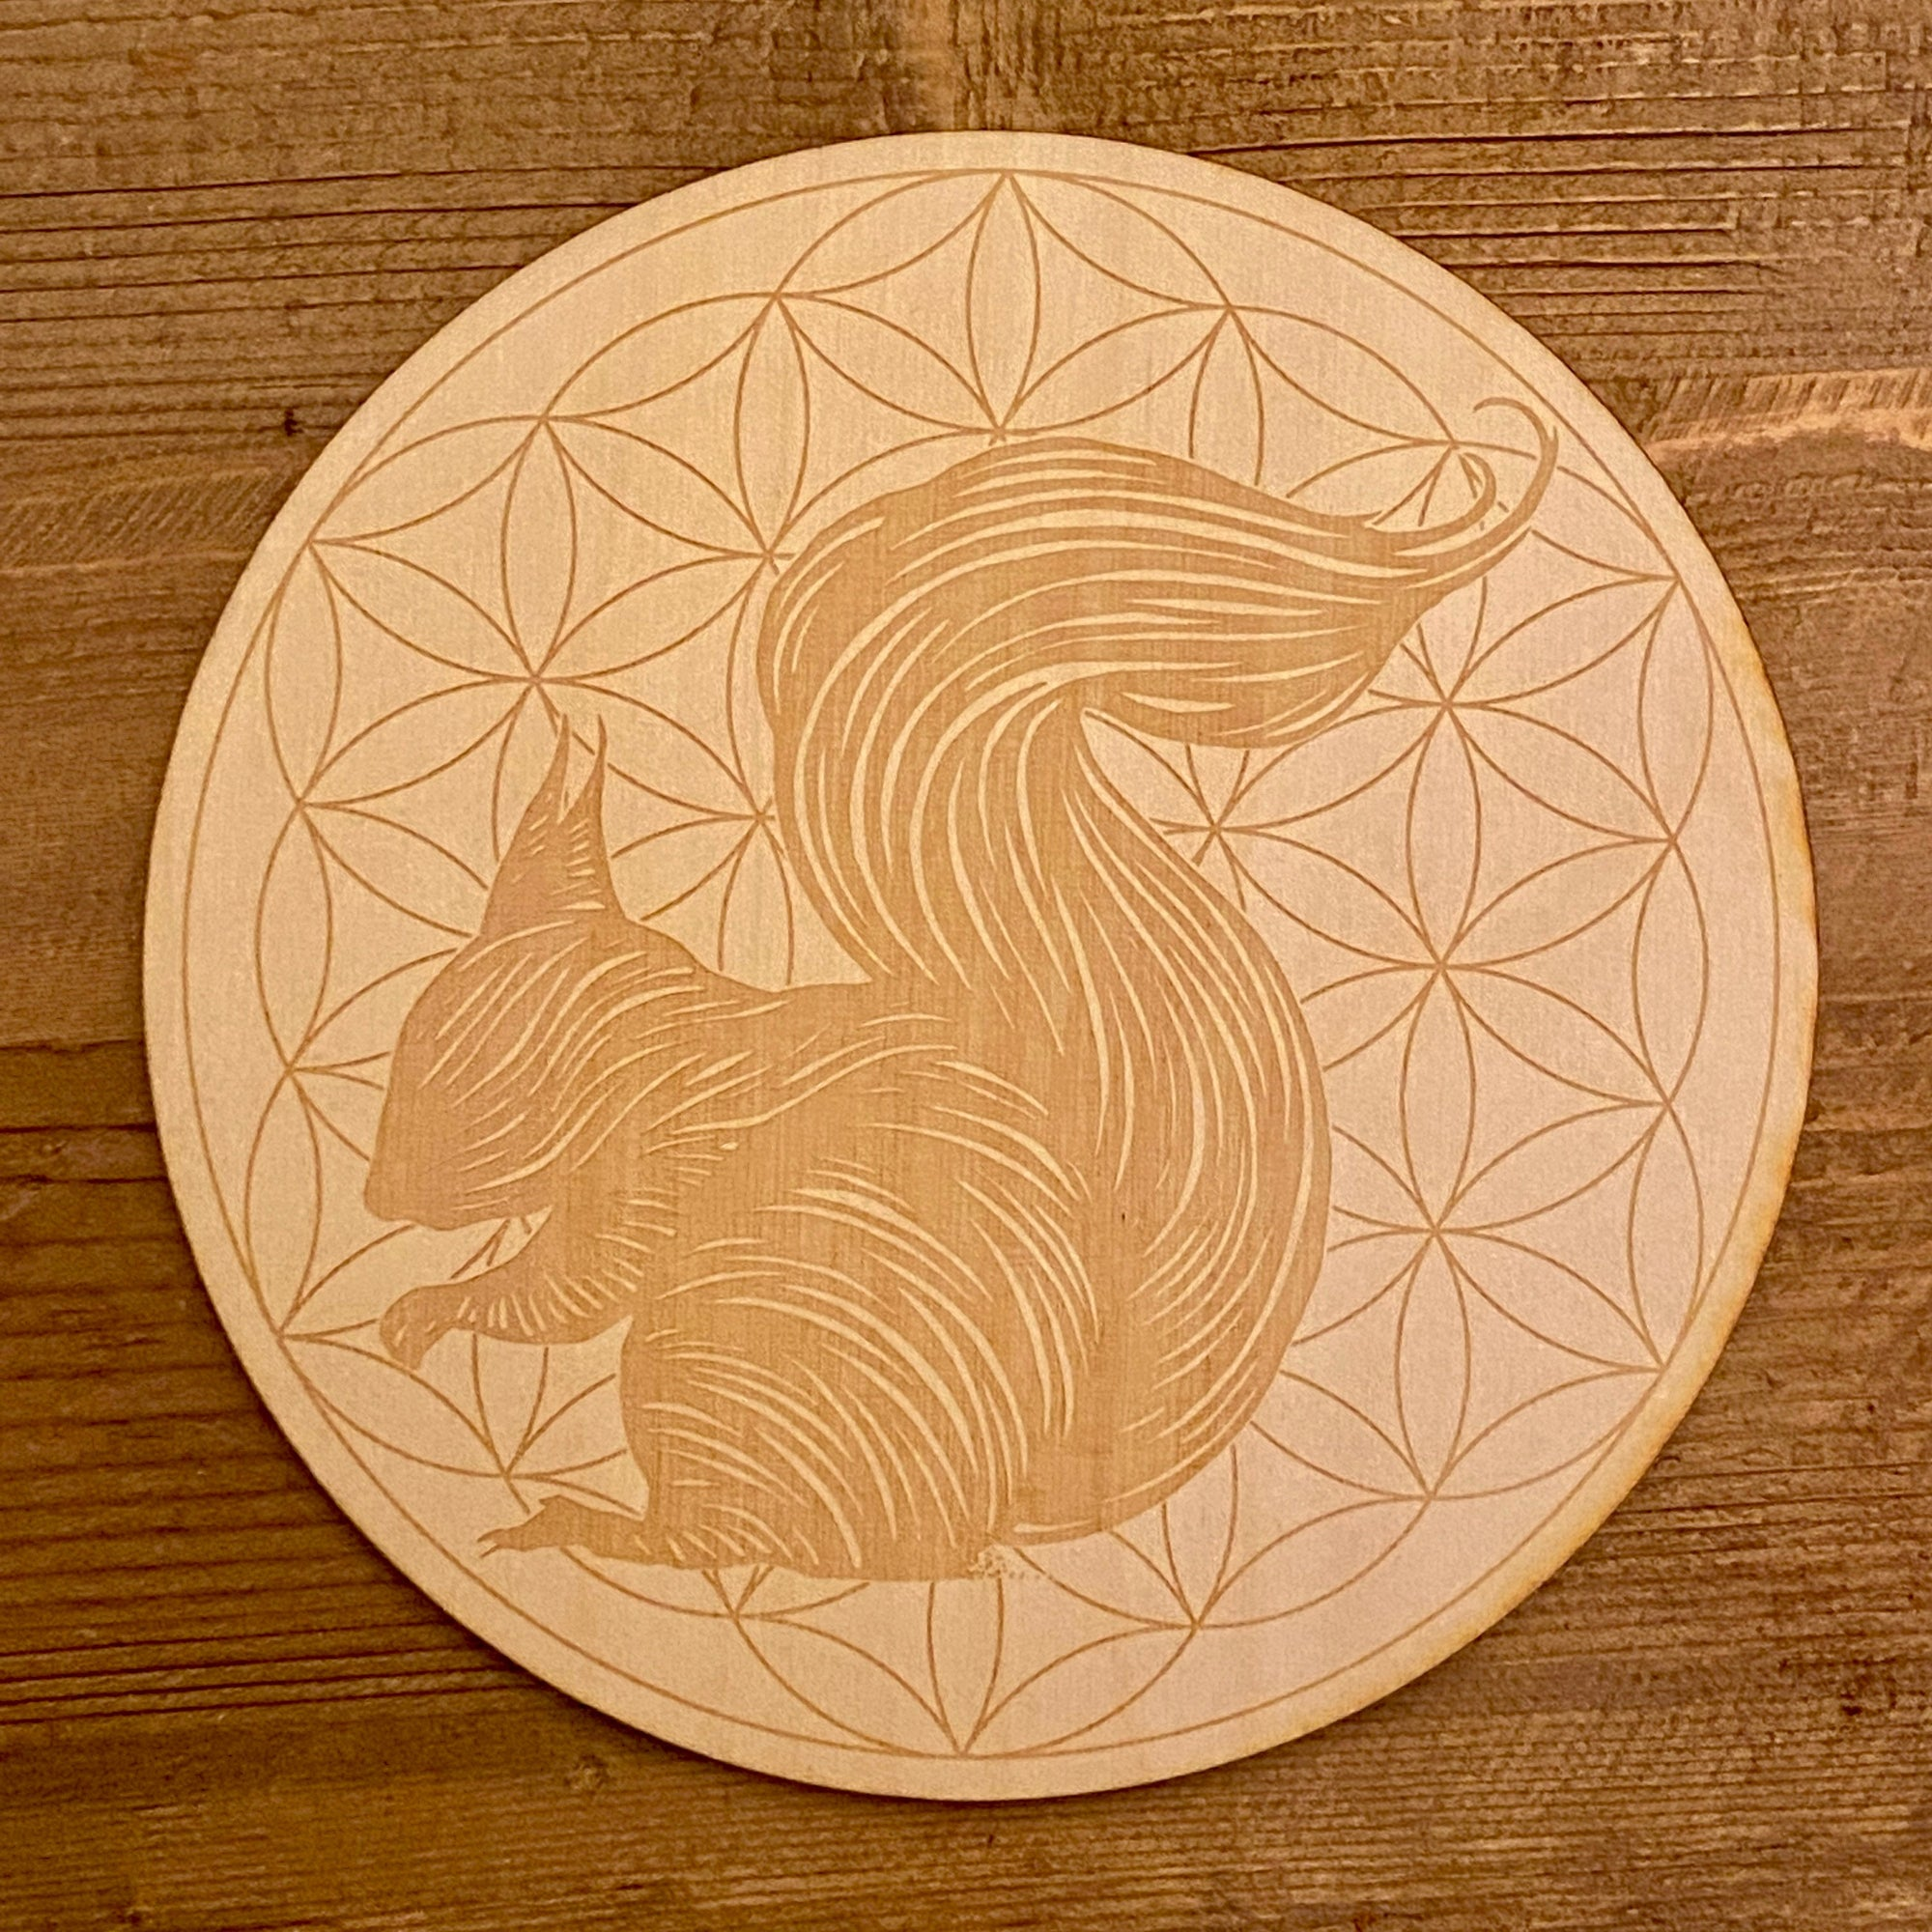 Squirrel Flower of Life Crystal Grid